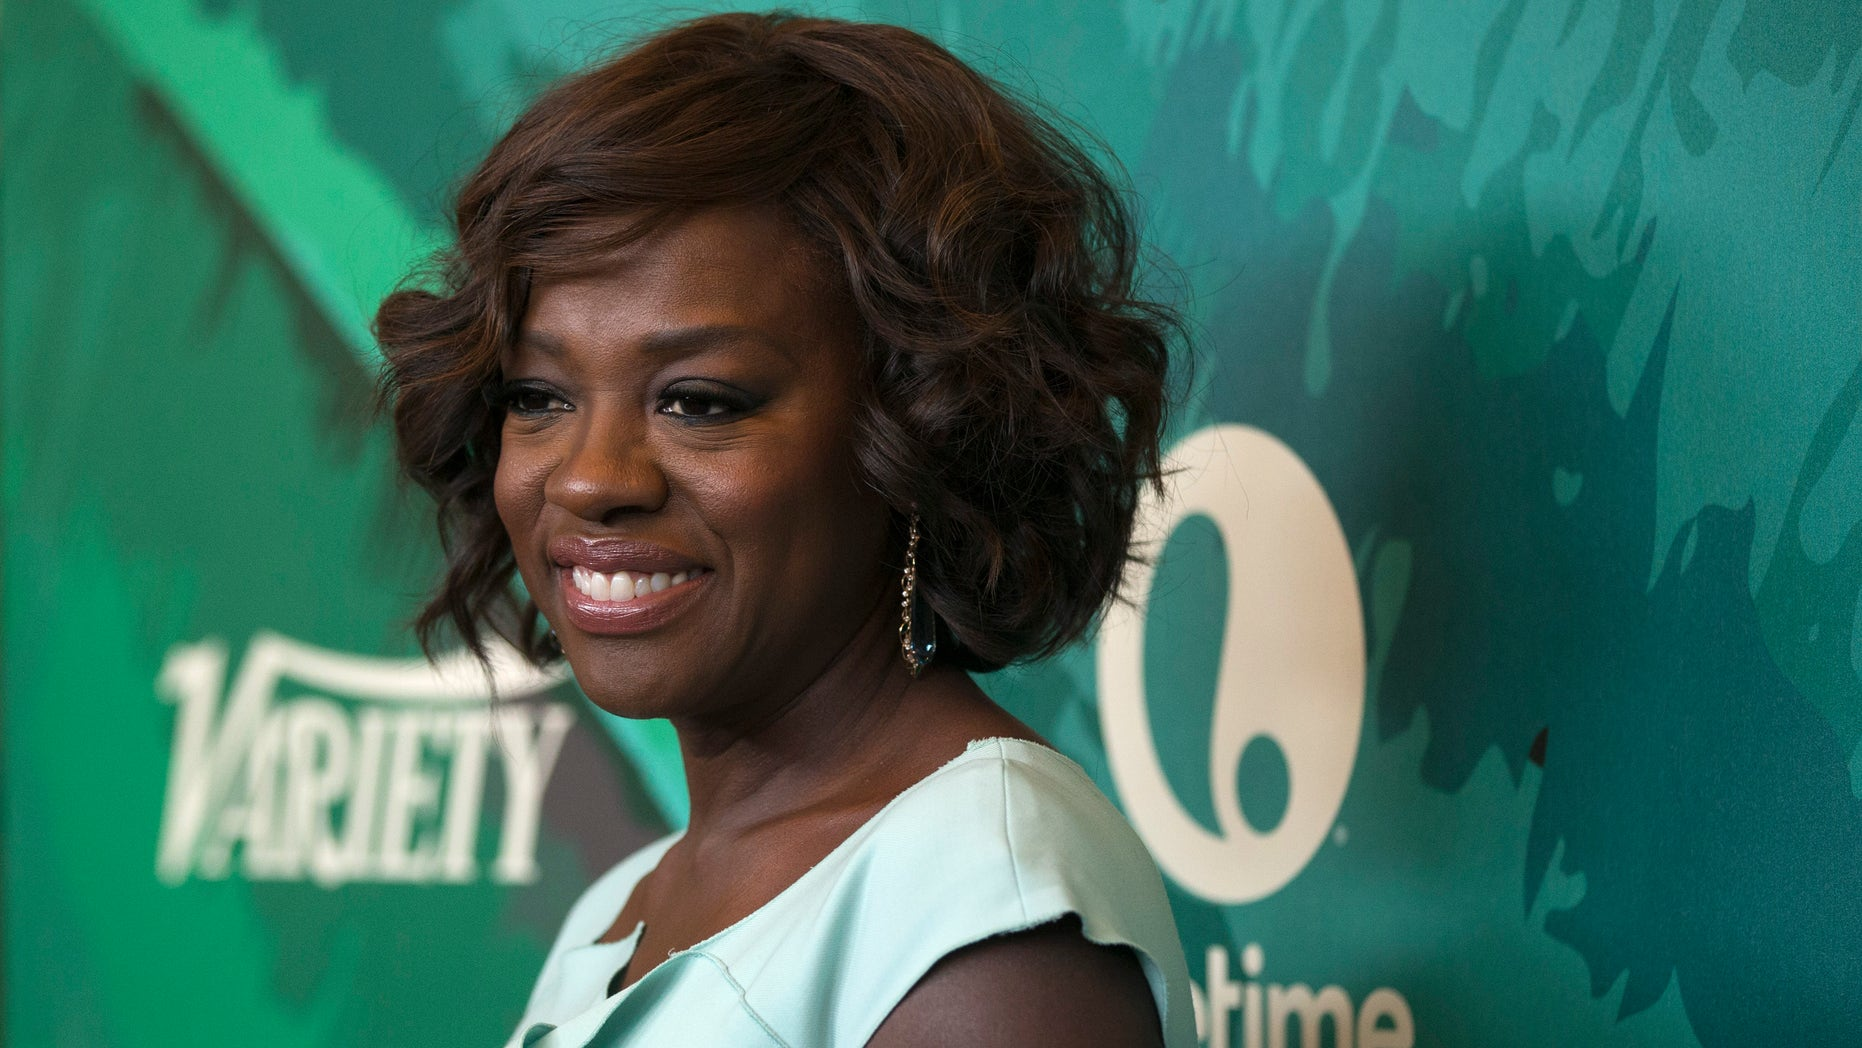 October 10, 2014. Actress Viola Davis poses at the seventh Variety's Power of Women luncheon at the Beverly Wilshire Hotel in Beverly Hills, California.